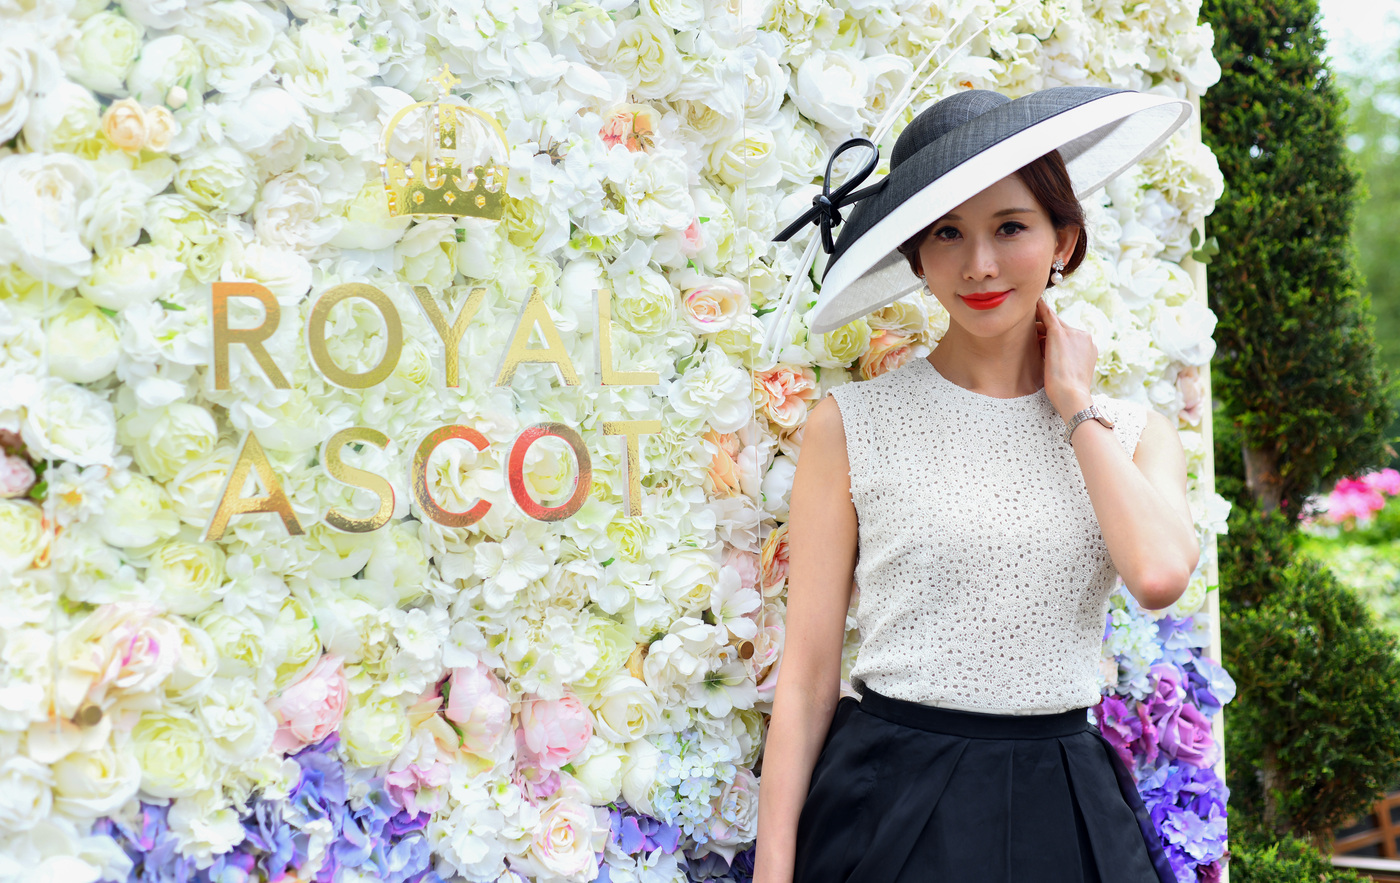 Longines Flat Racing Event: Longines celebrates elegance at Royal Ascot with Chi Ling Lin 13